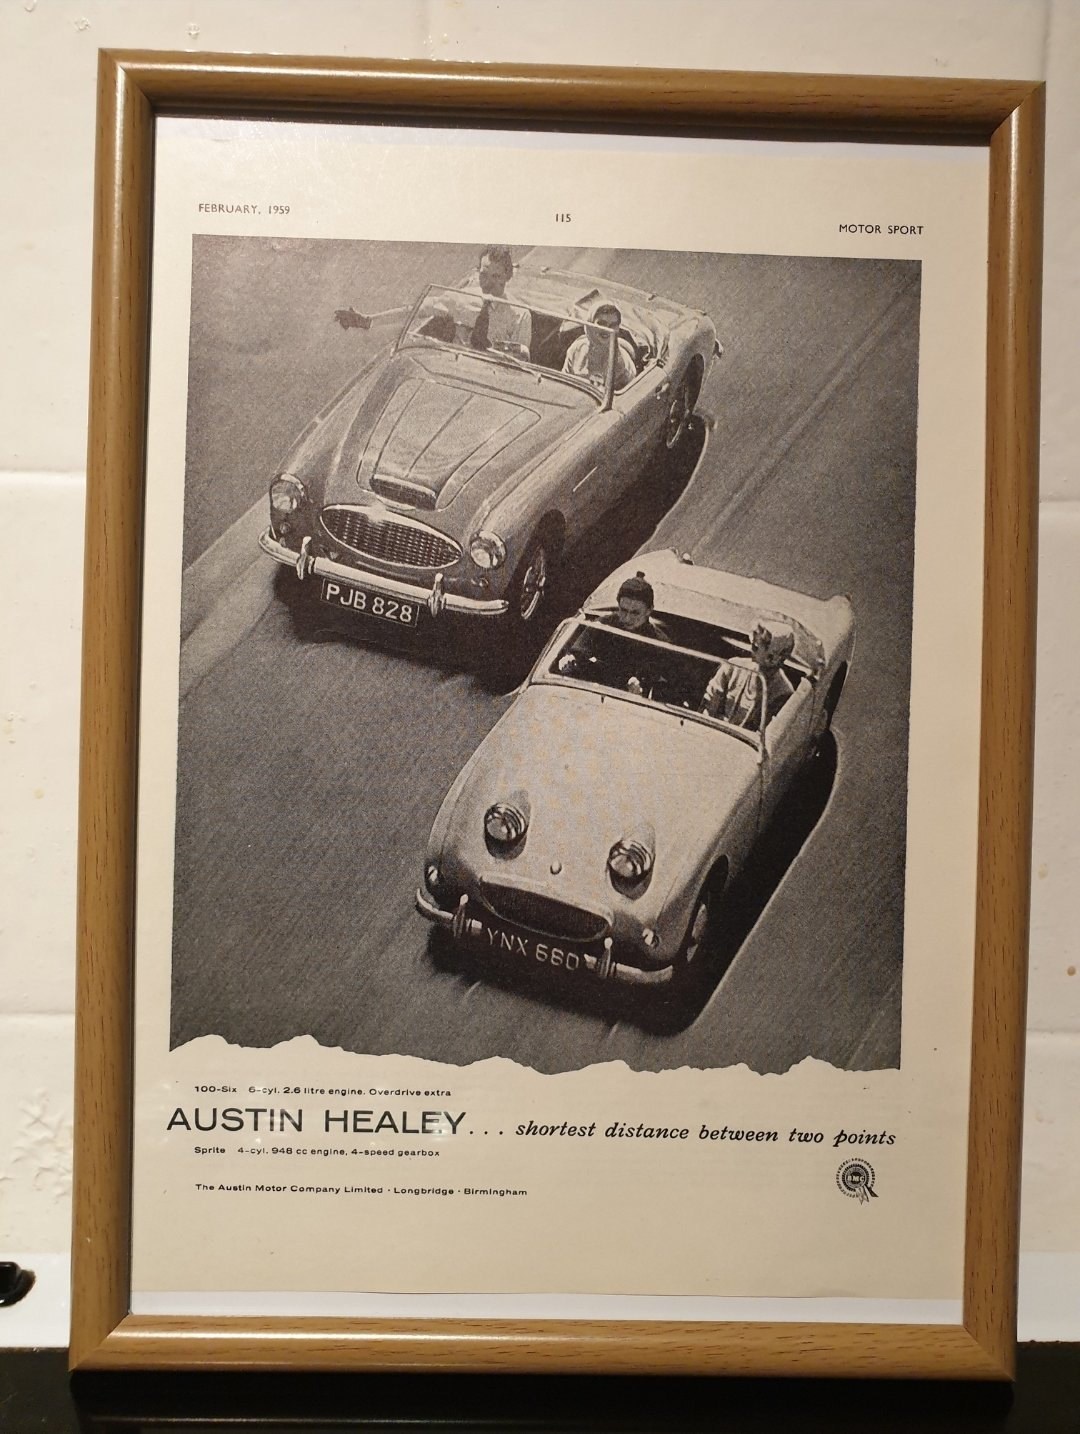 1959 Original Austin Healey Framed Advert For Sale (picture 1 of 2)